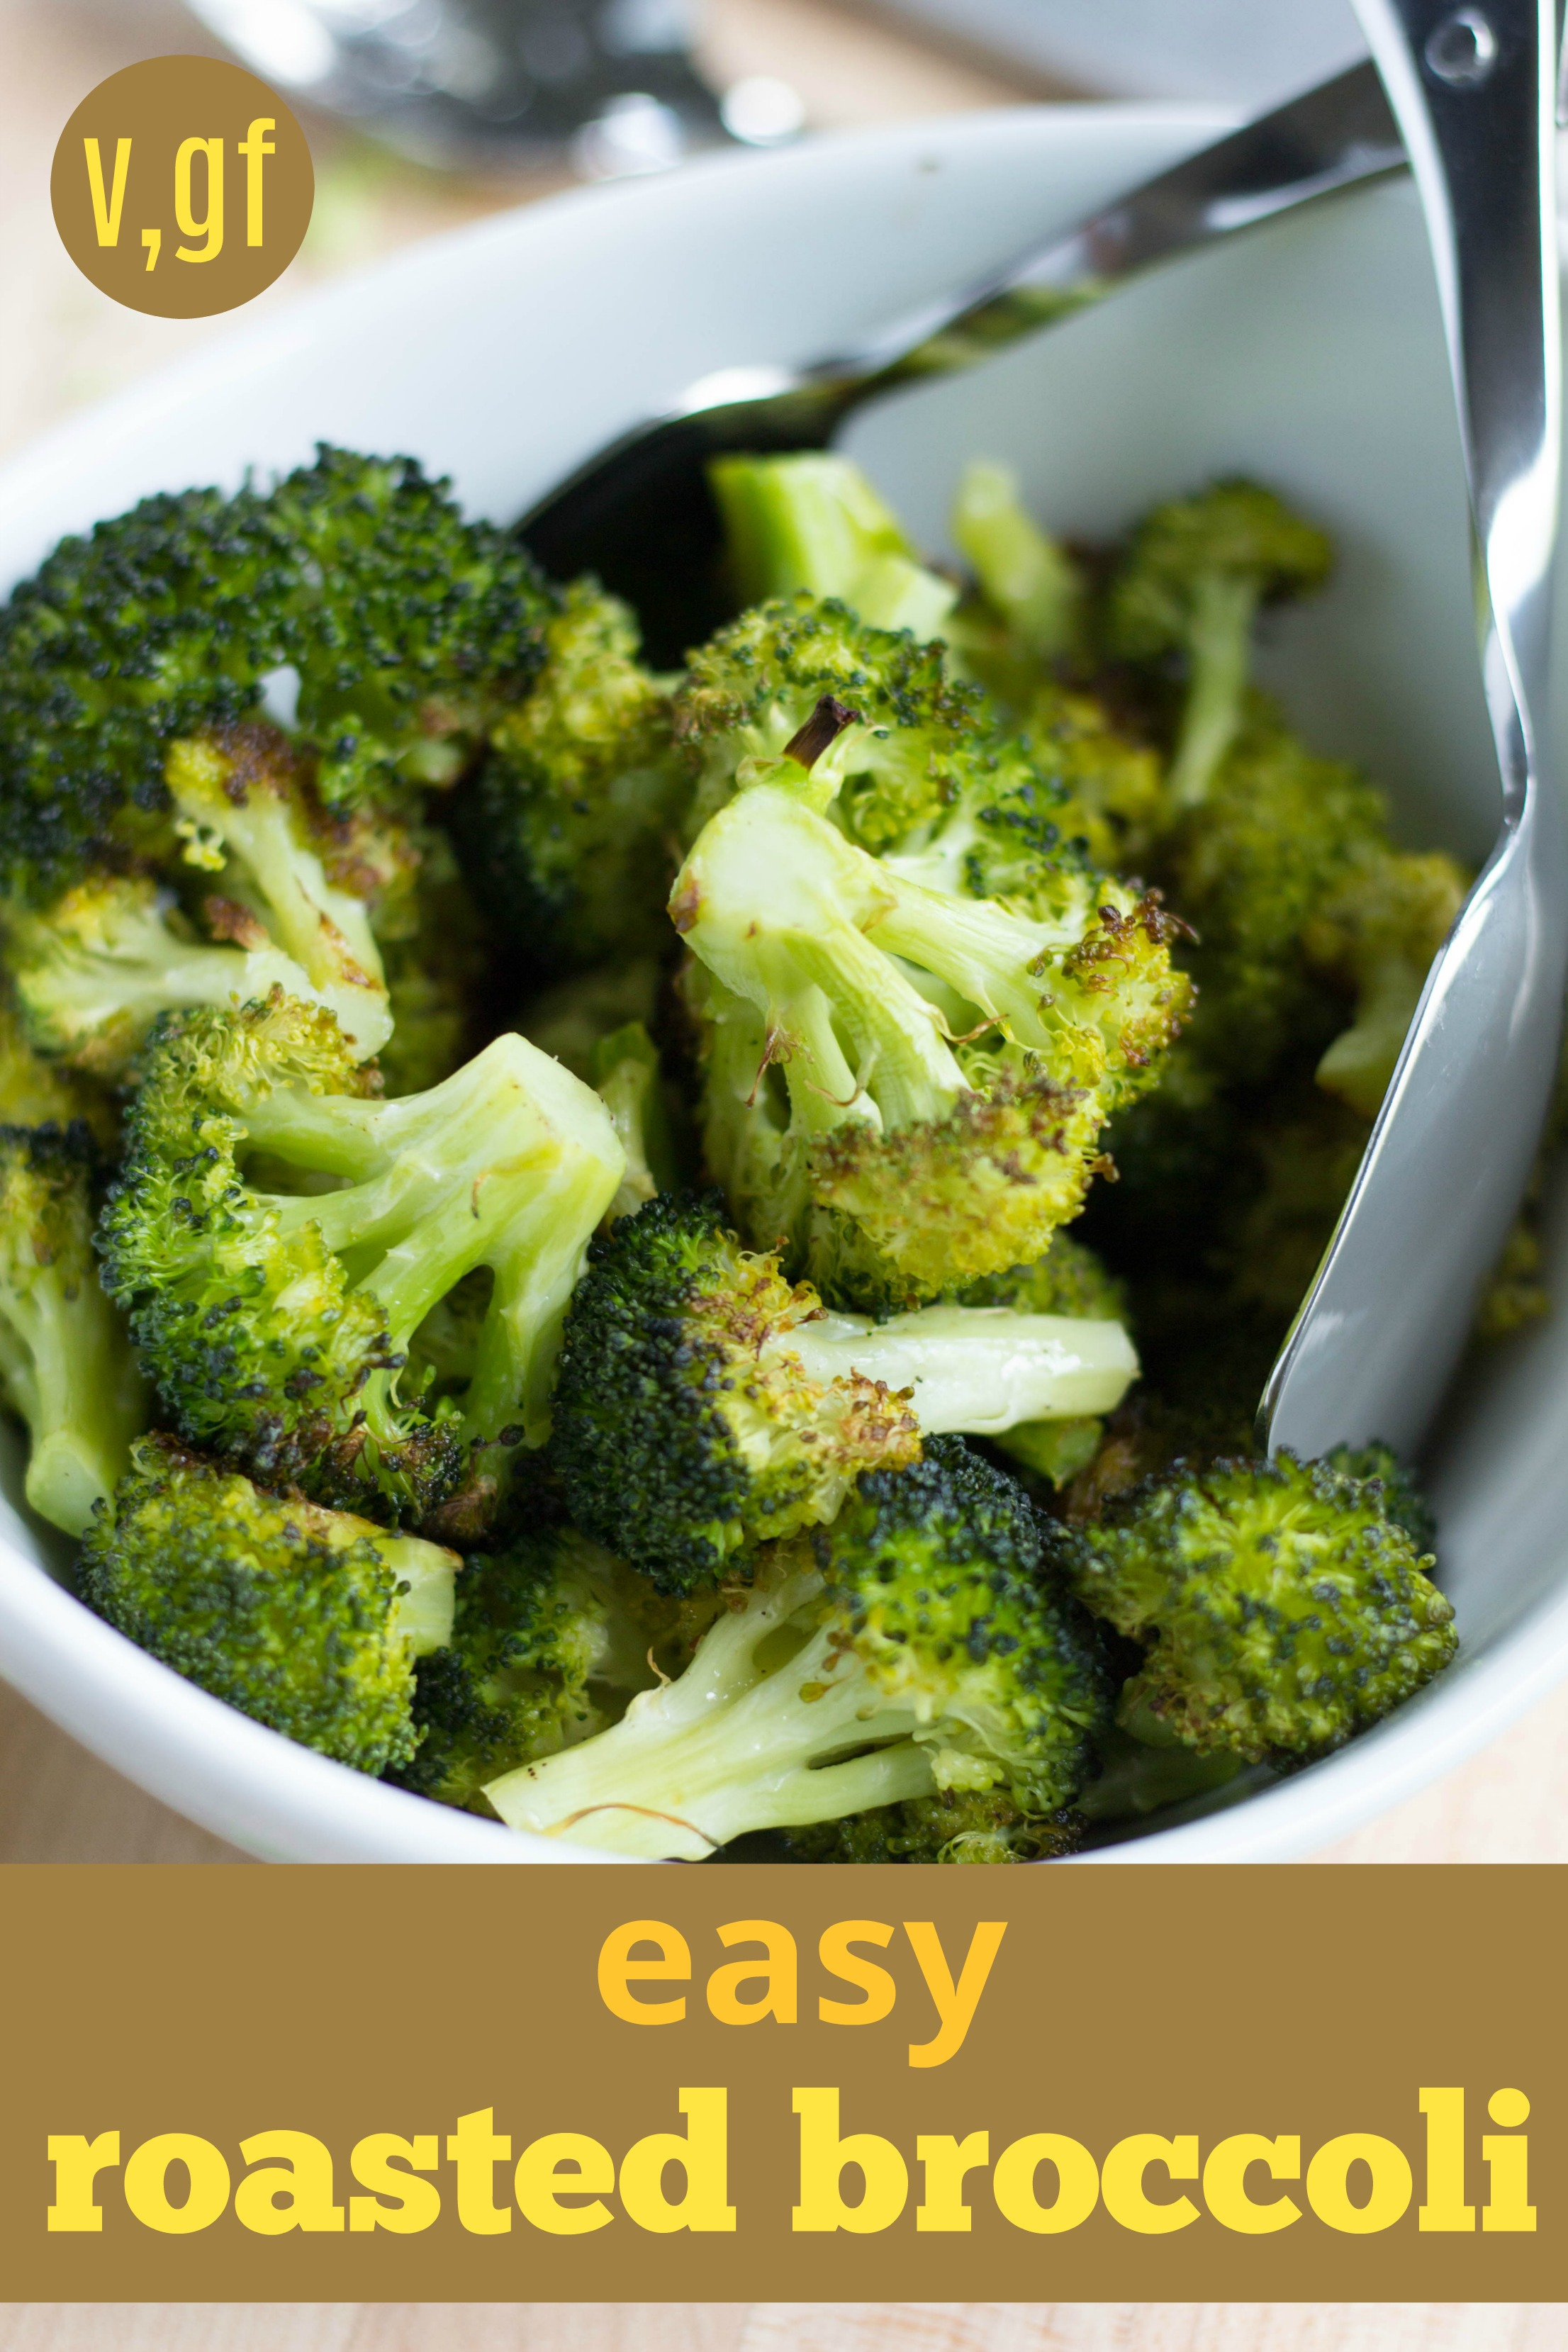 Easy, roasted broccoli ready in TWENTY minutes! This is one of my go-to, veggie side dishes. Naturally vegan and gluten-free. Easy Roasted Broccoli by Stacey Mattinson Nutrition